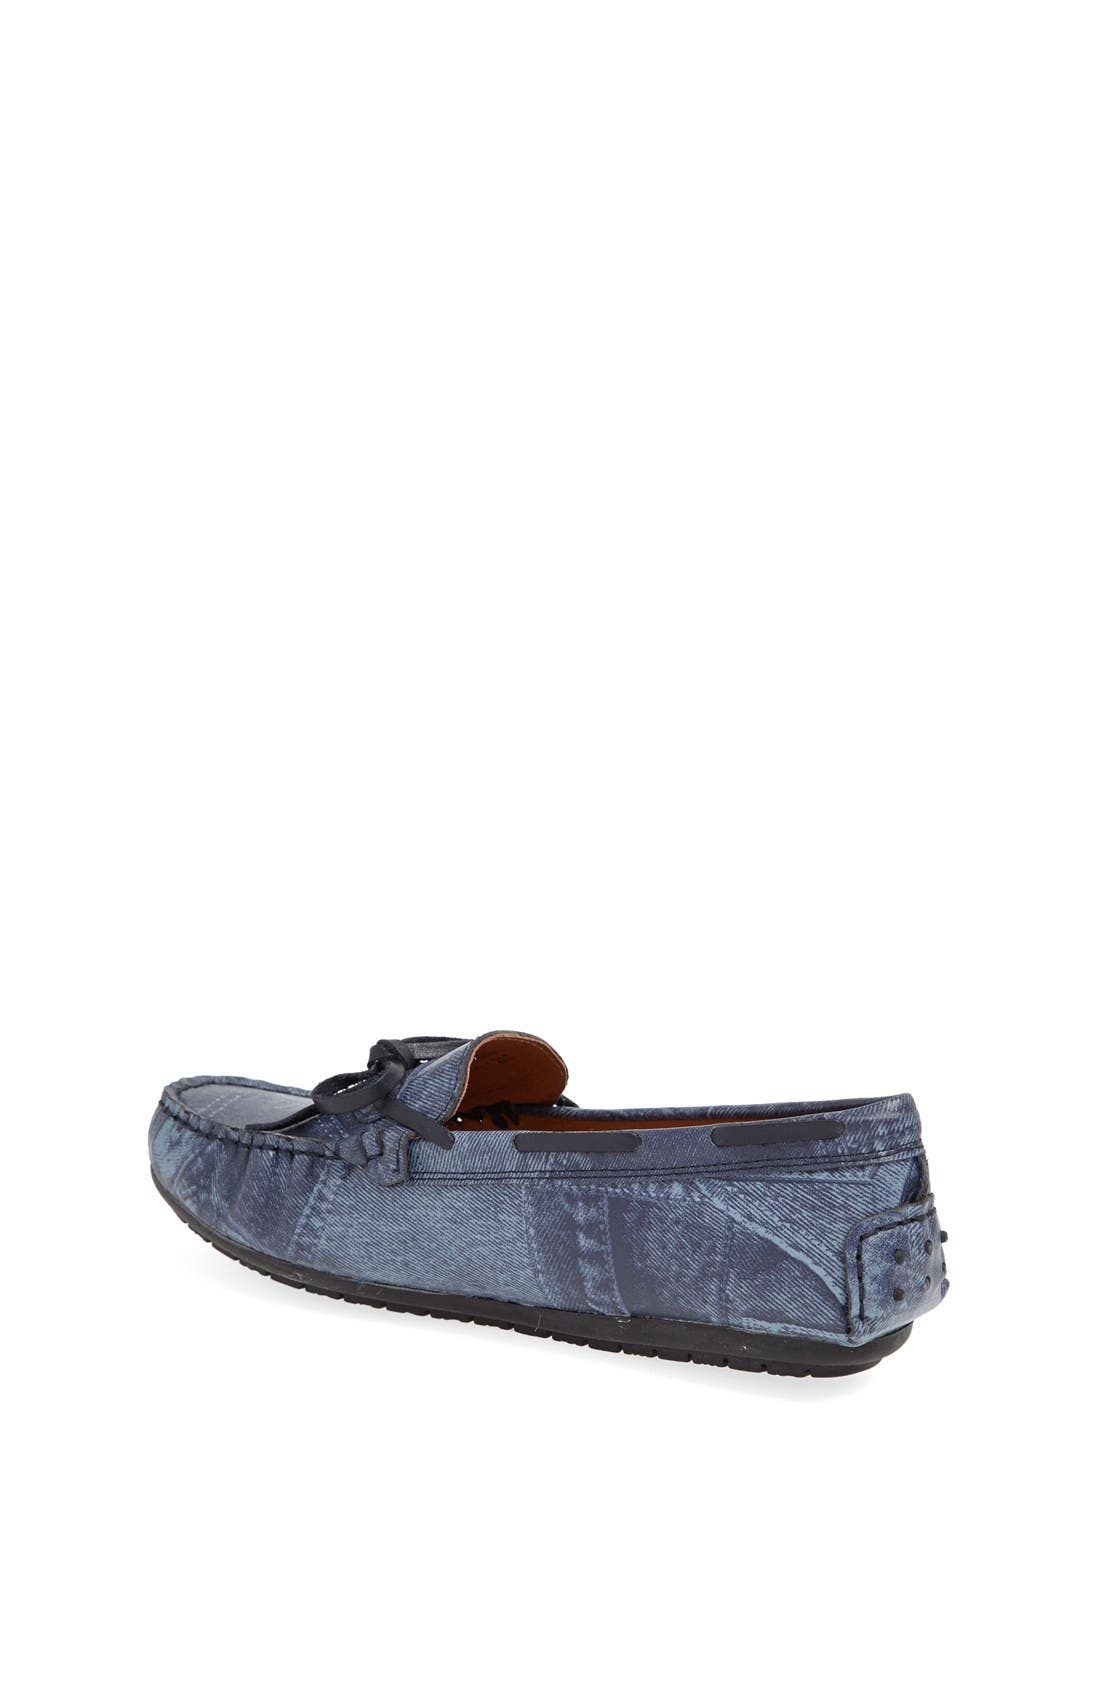 Alternate Image 2  - Venettini 'Morgan' Loafer (Toddler, Little Kid & Big Kid)